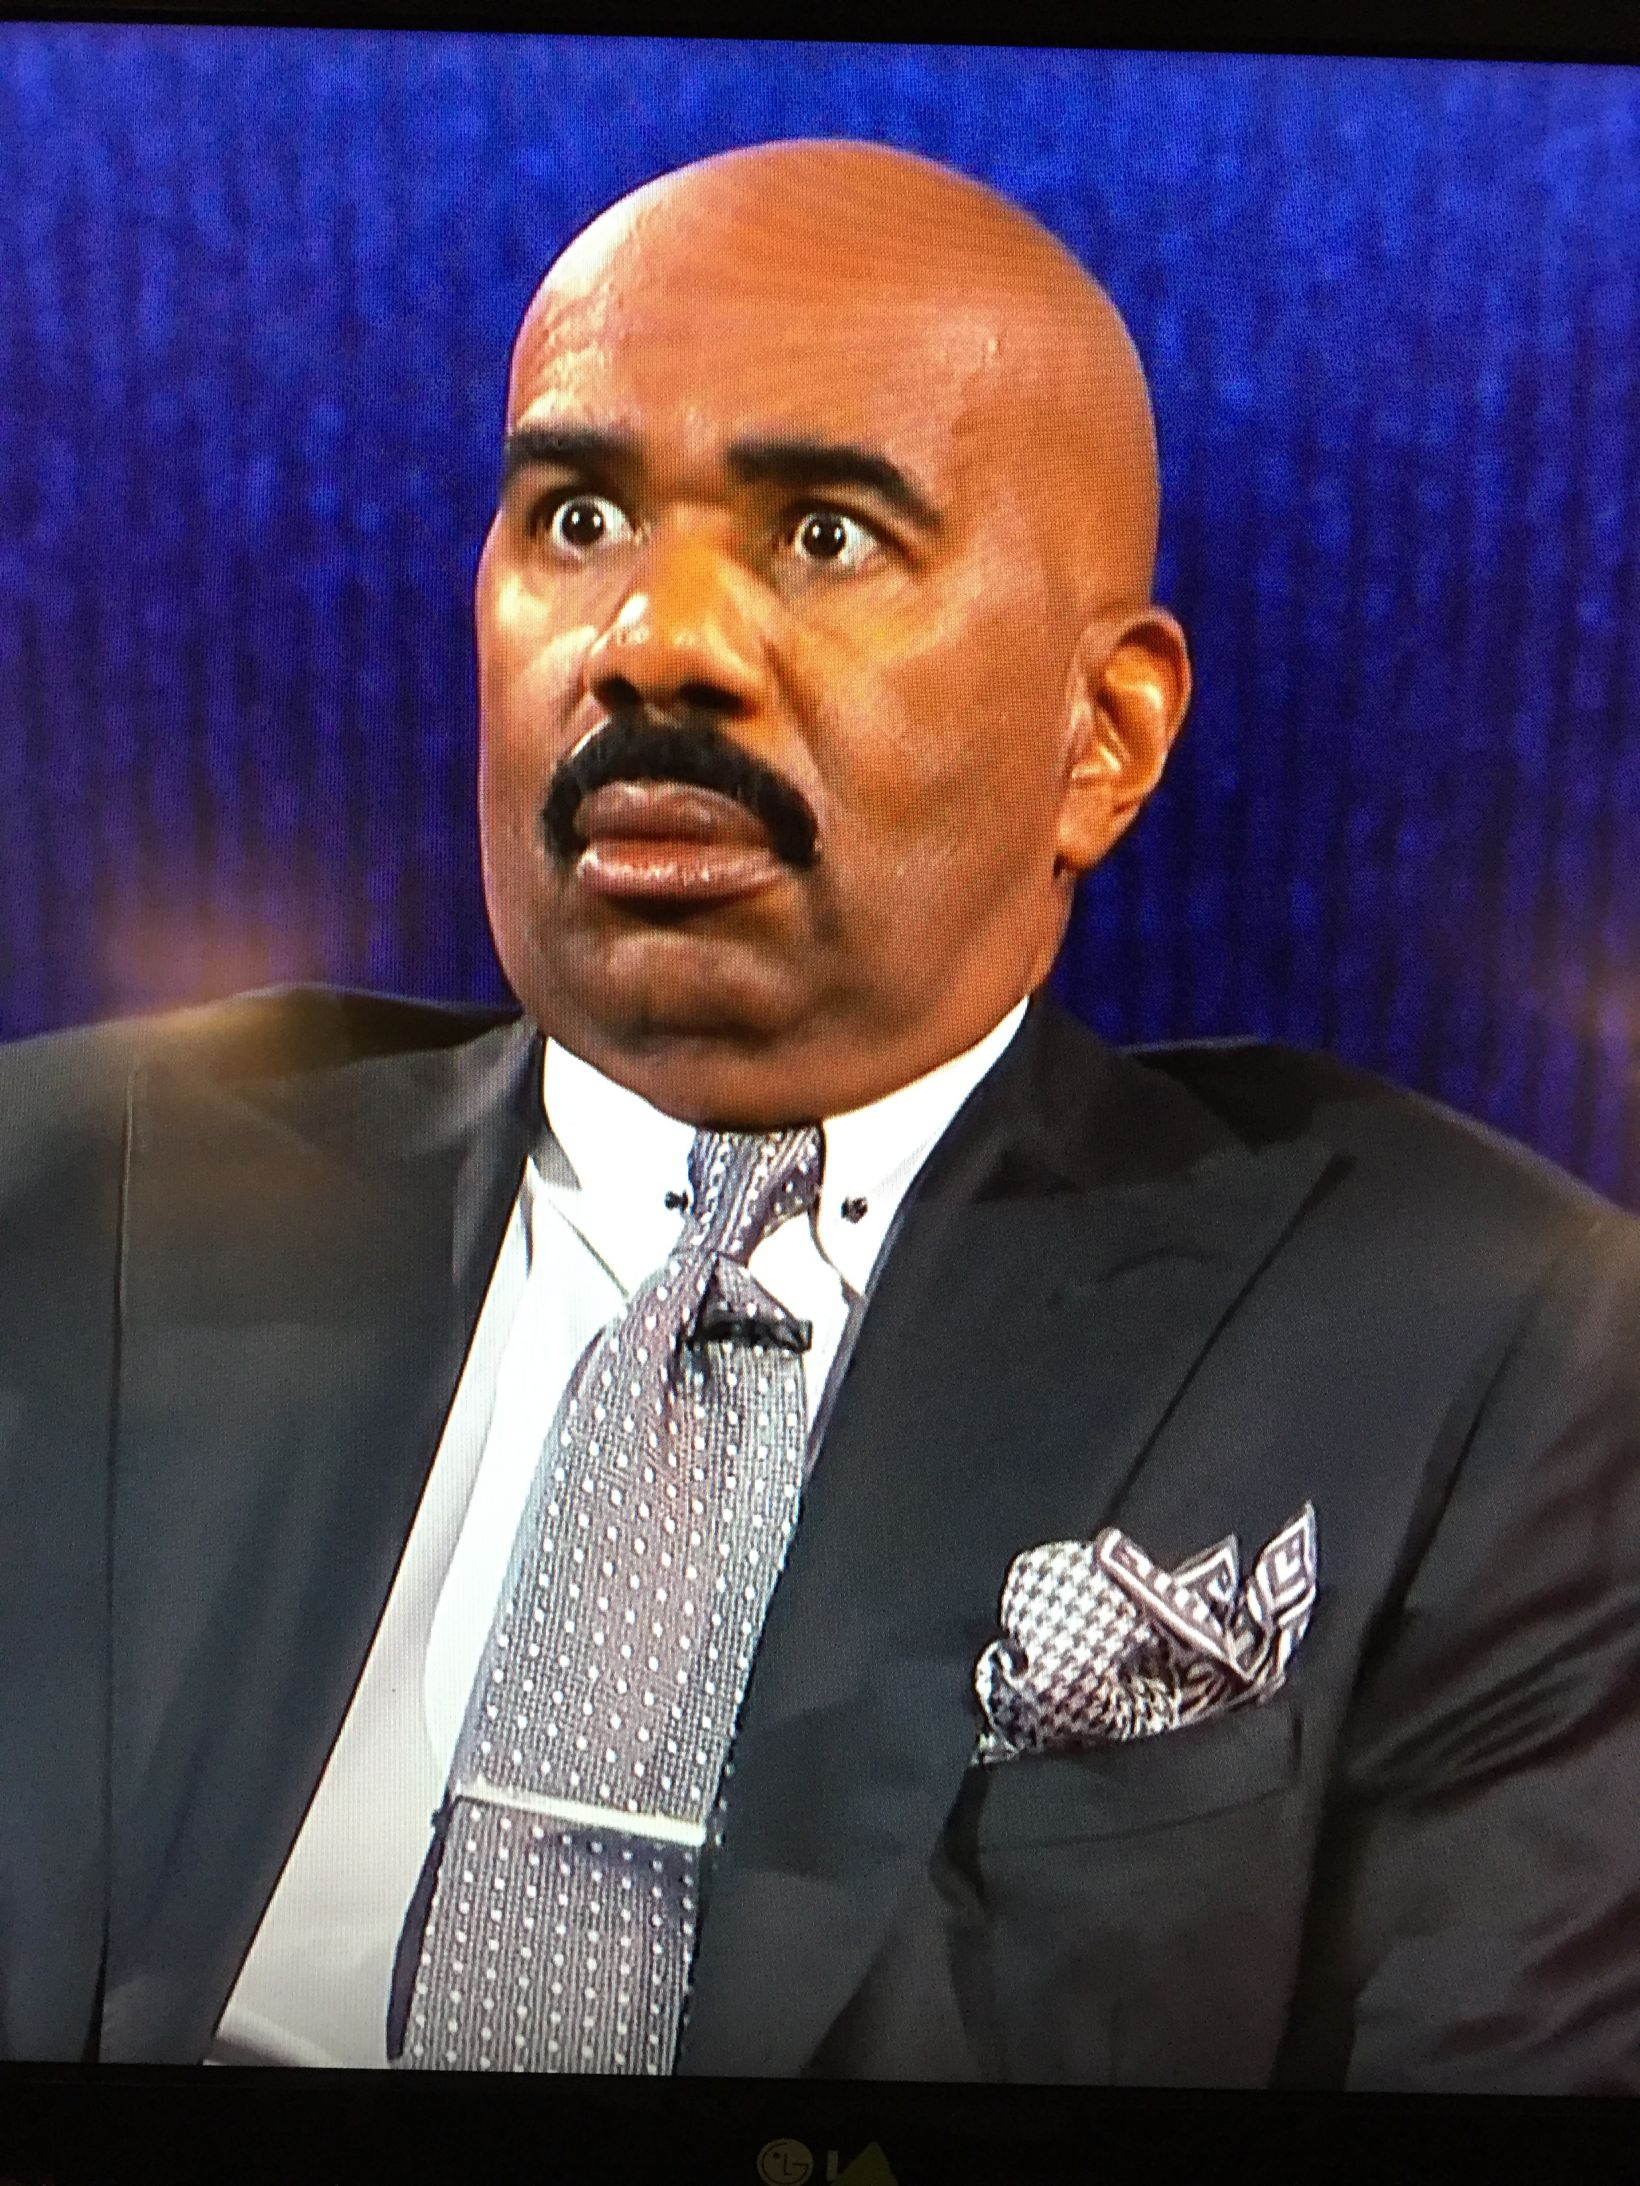 High Quality Steve Harvey WTF Face Blank Meme Template